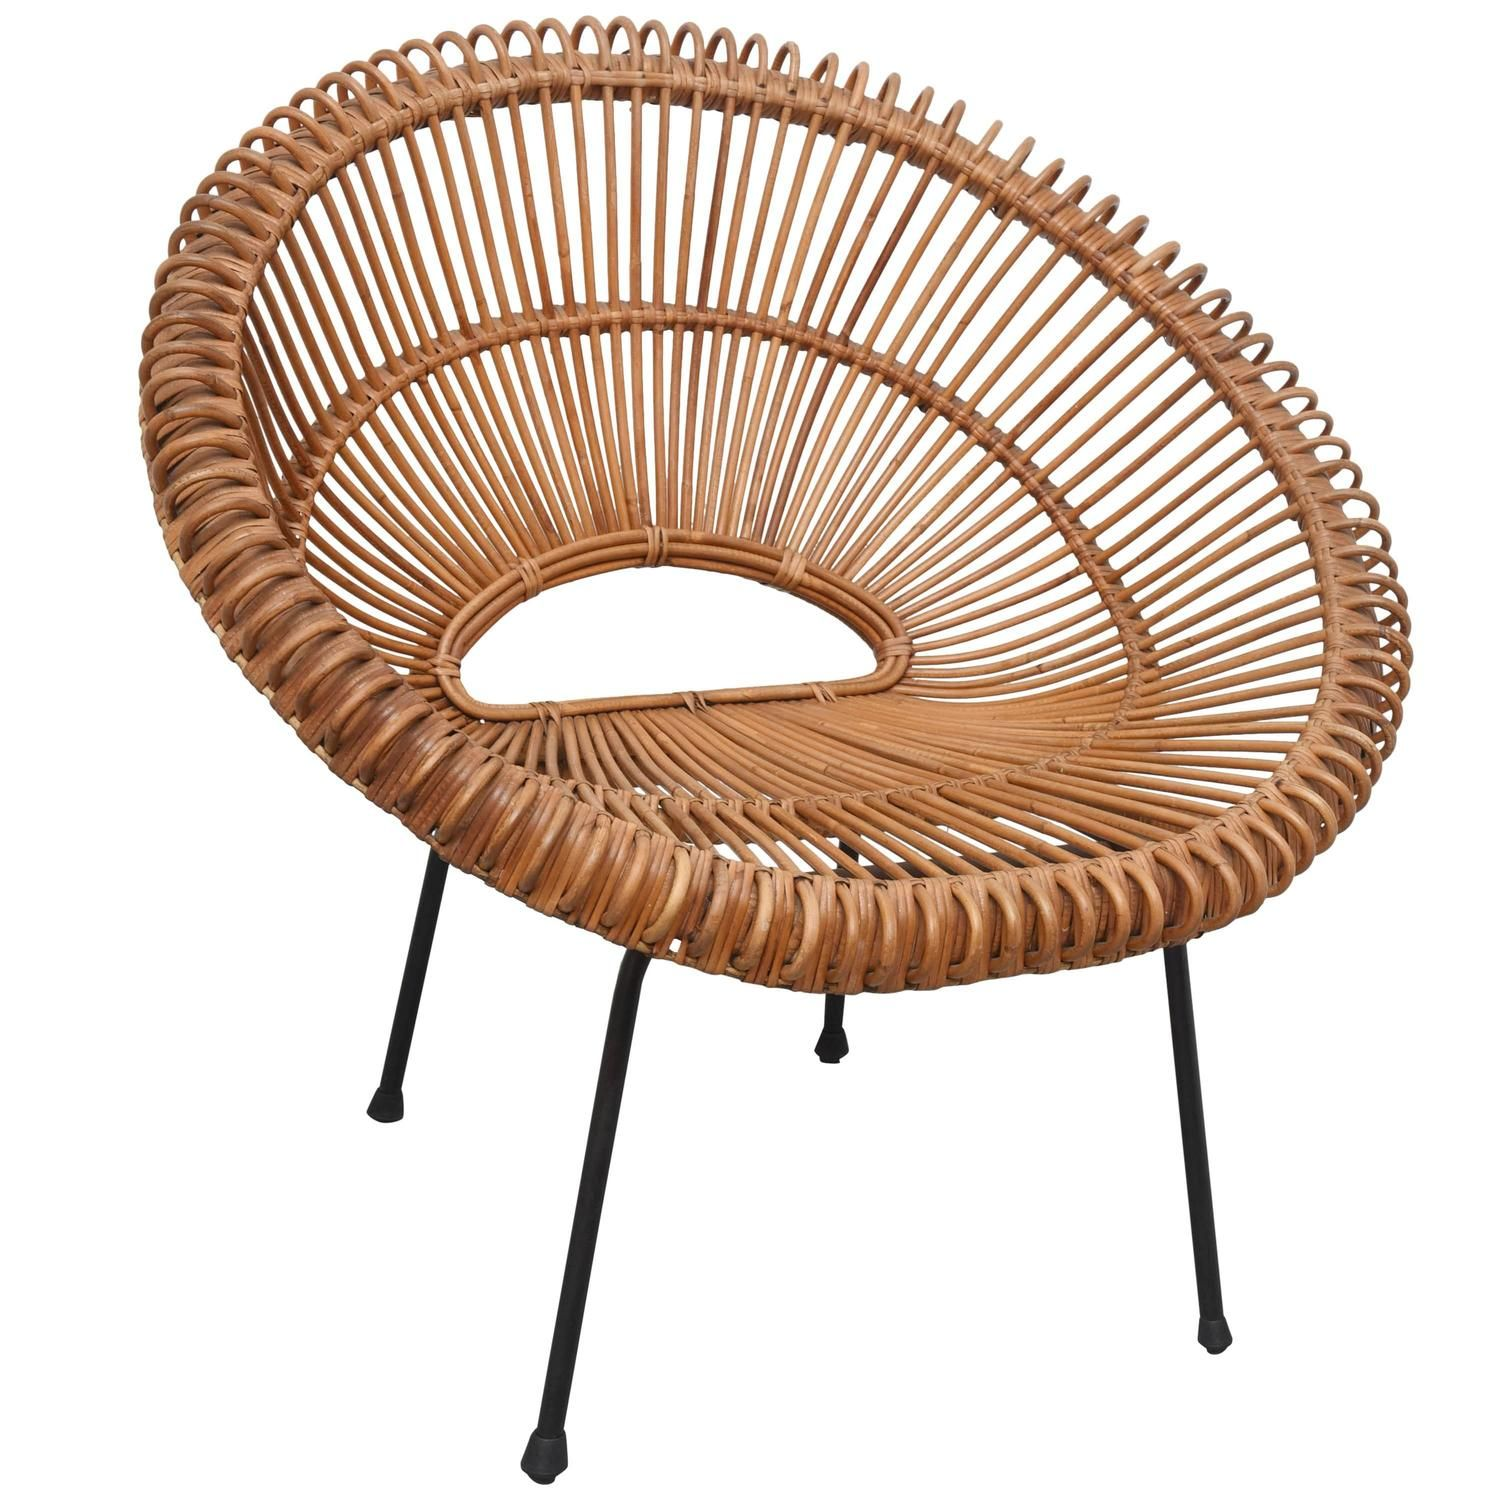 Rattan chair by janine abraham dirk jan rol france for Modern wicker dining chairs